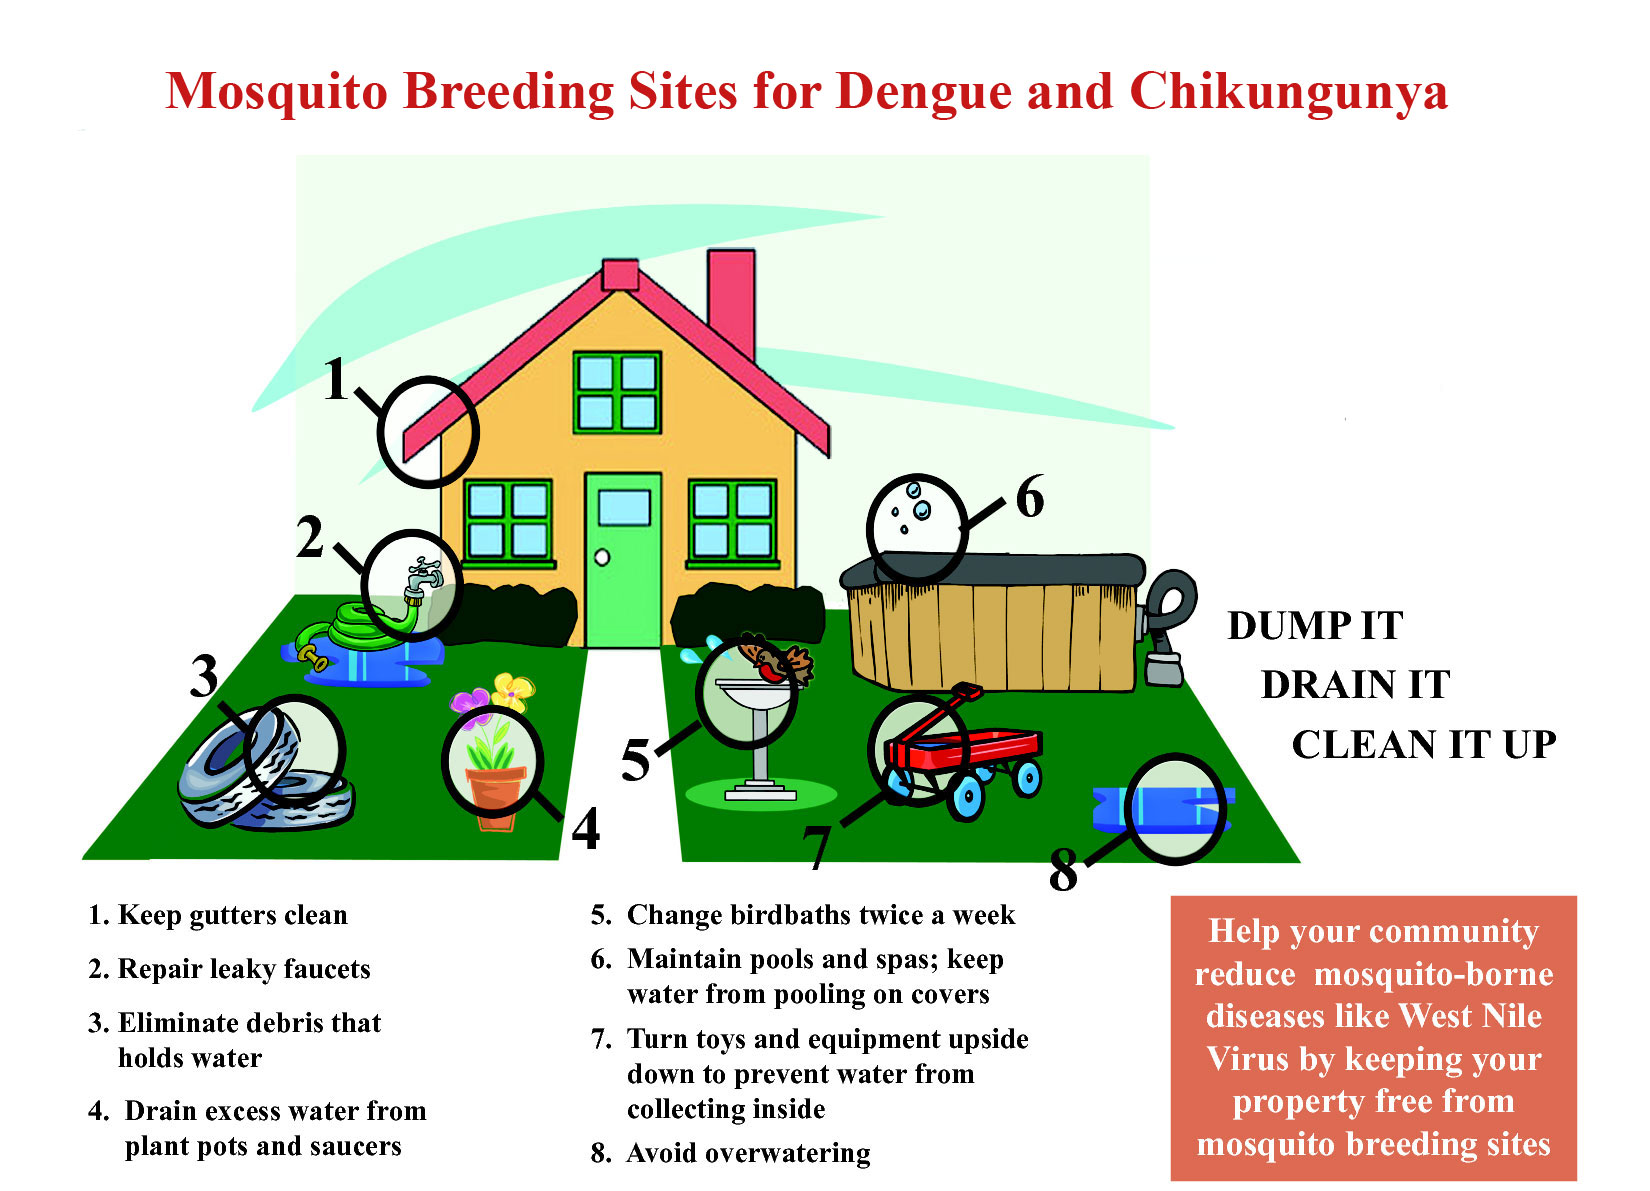 mosquito-breeding-sites-revised